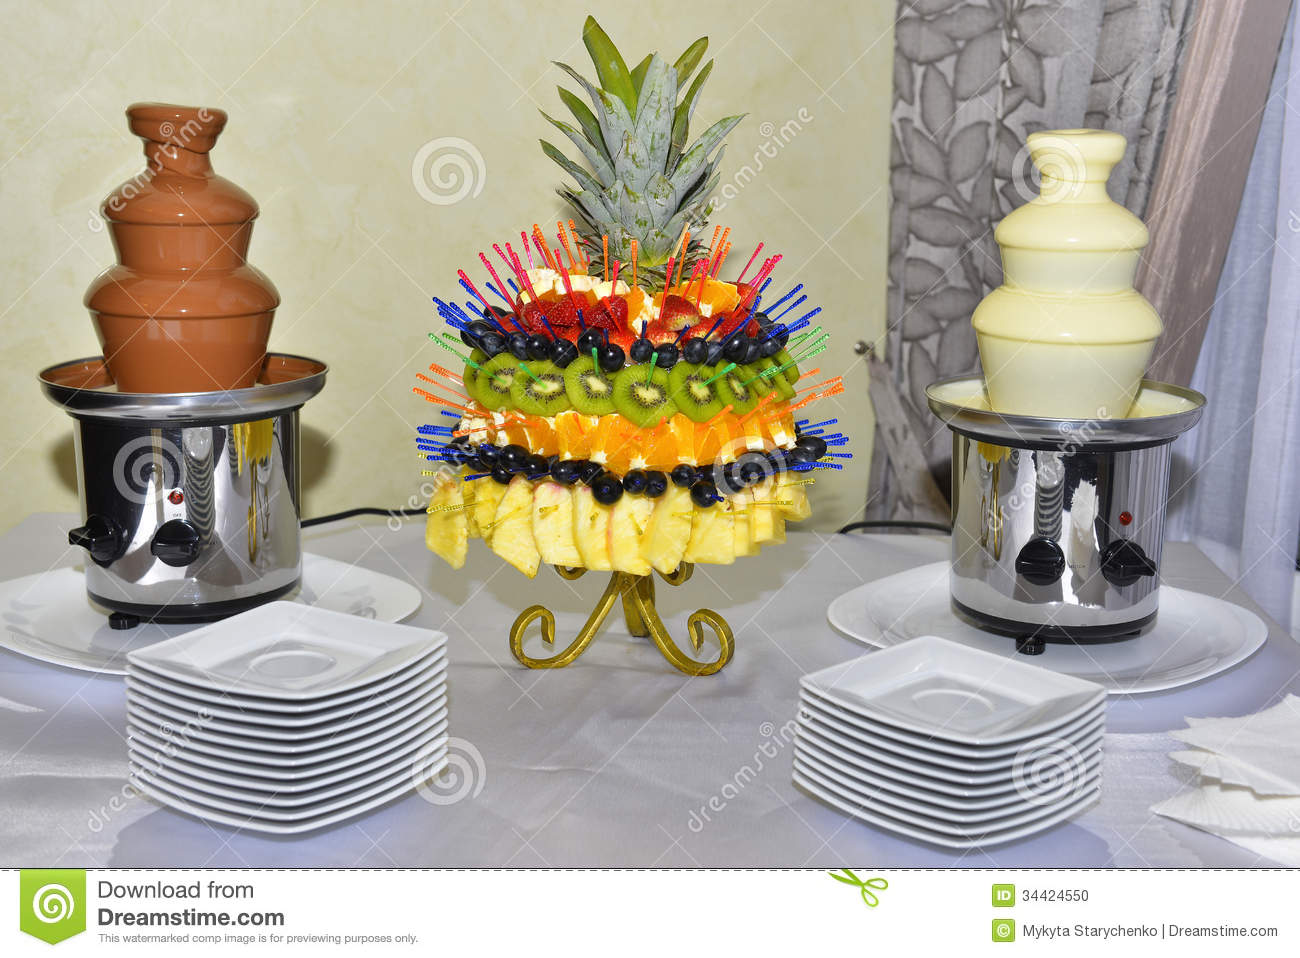 Chocolate Fountains With Fruits On The Table Stock Photo - Image ...